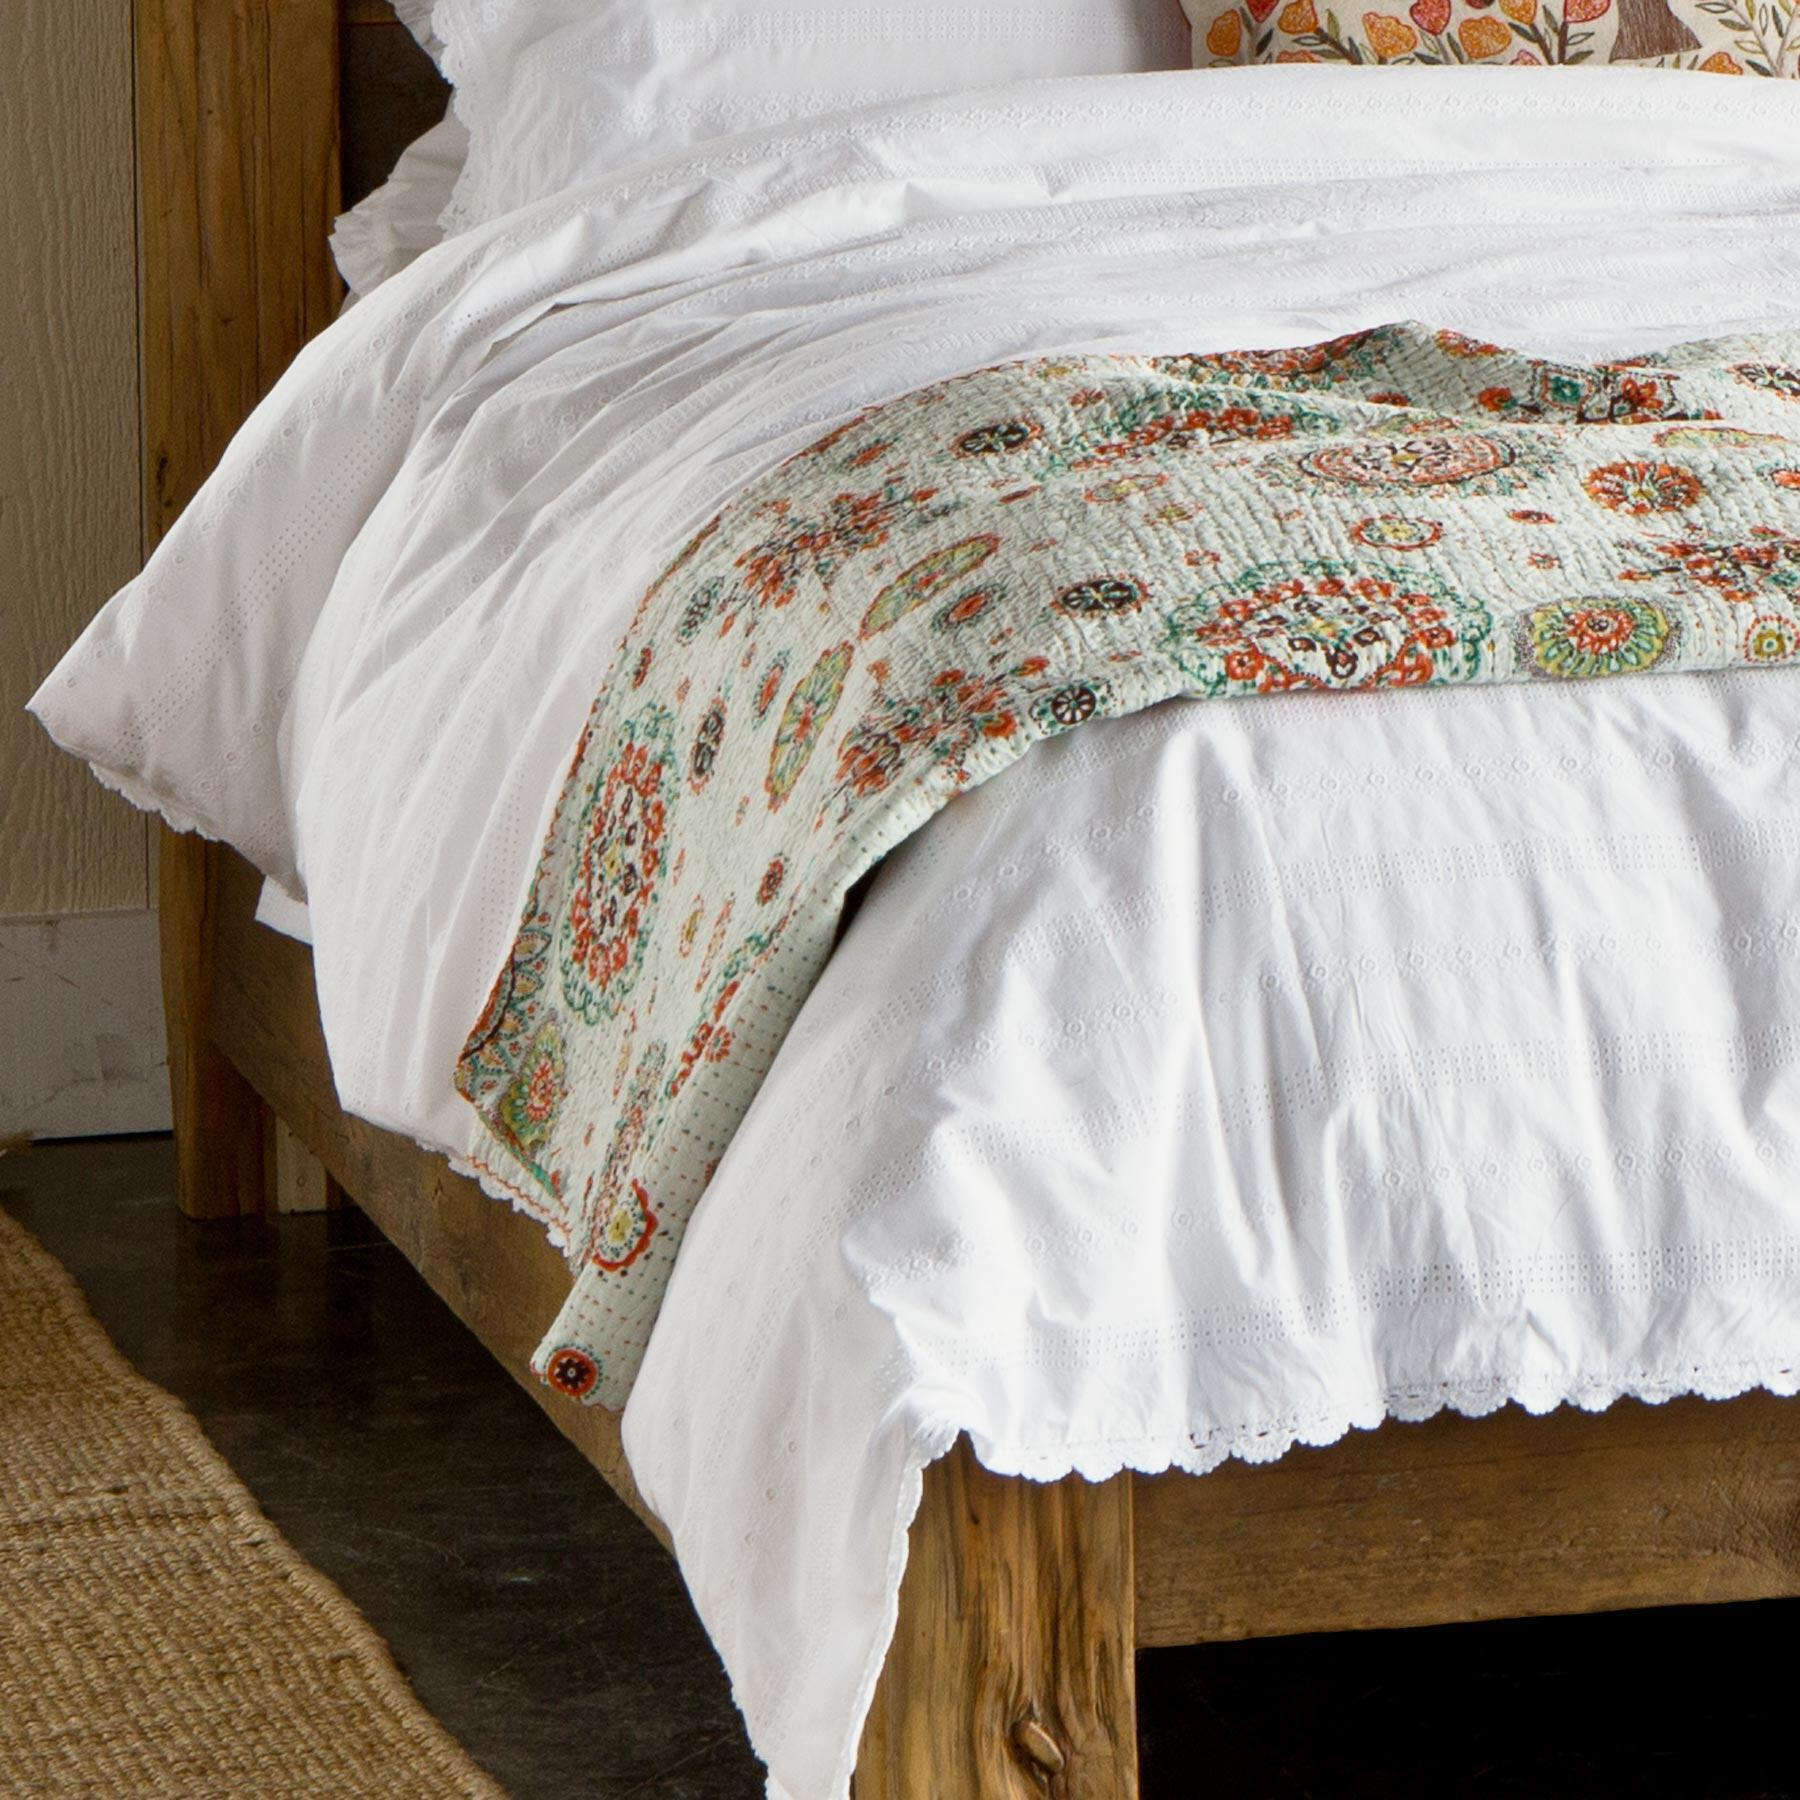 SWEET SIMPLICITY DUVET COVER: View 1